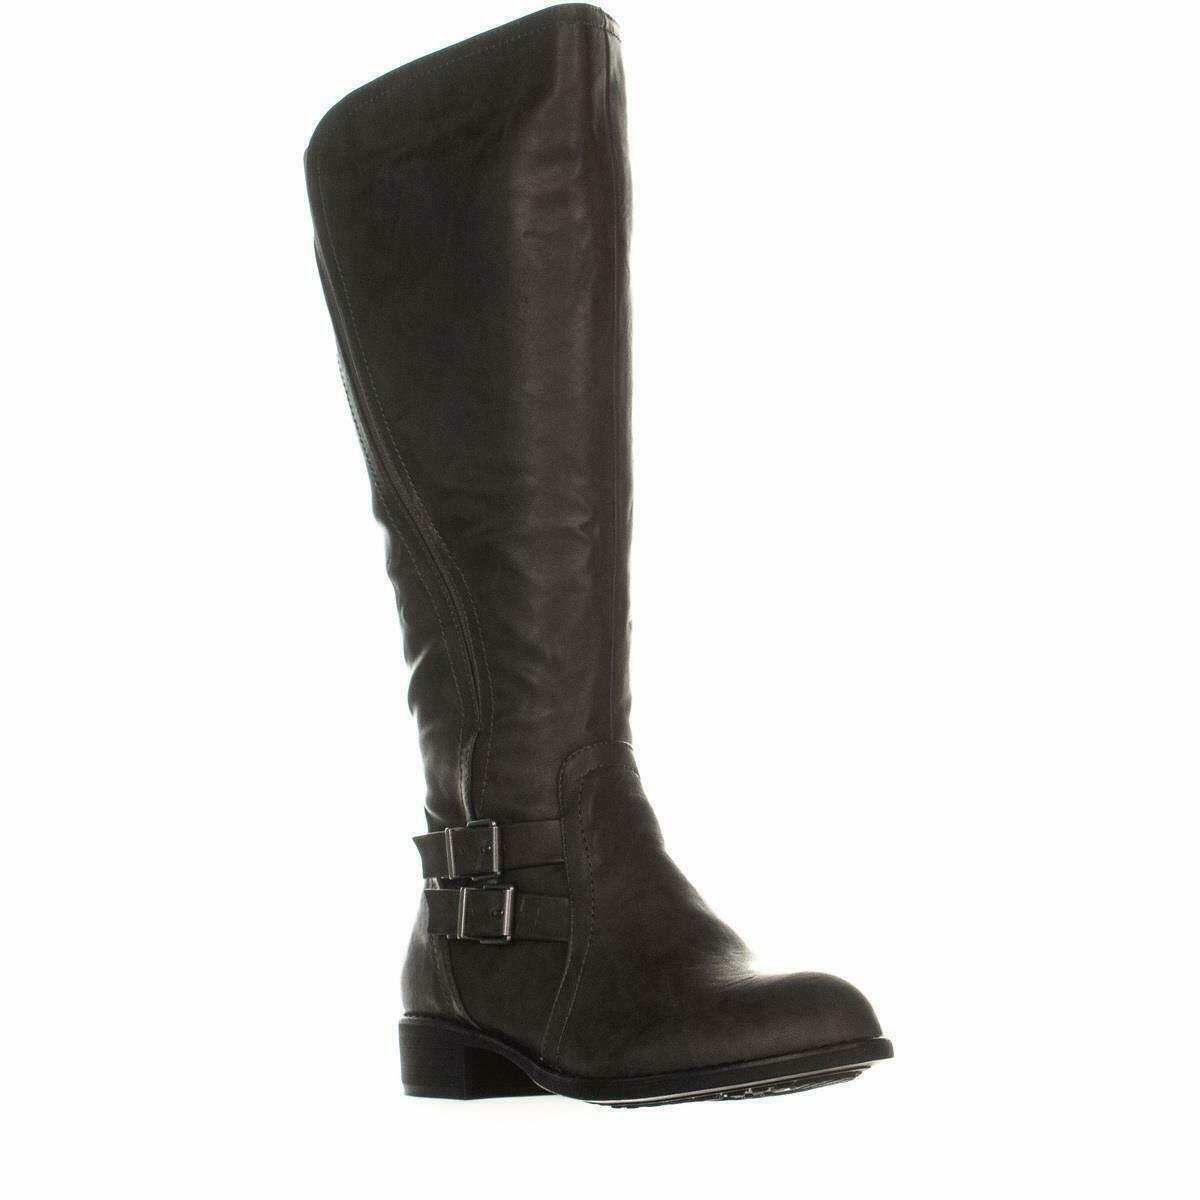 Style & Co. SC35 Milah Wide Calf Zip-Up Riding Boots,, Charcoal, Size 5.0 US / 3